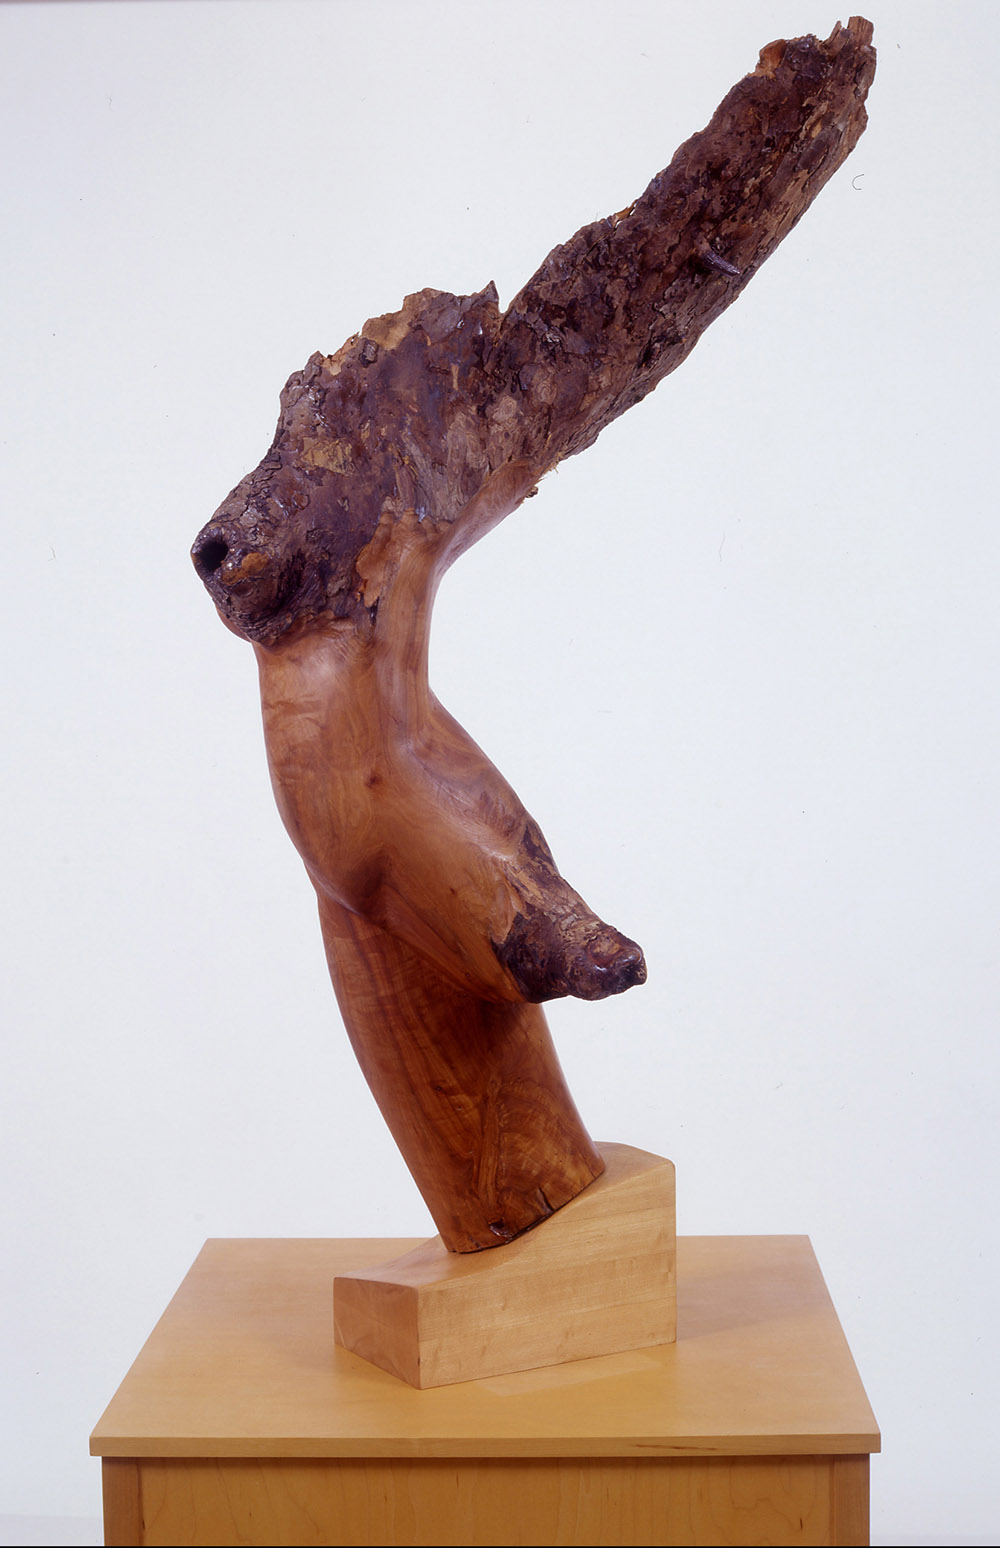 16.c-Ono-Victory-1996.-Apple-wood-129.5-x-68.6-x-35.6-cm-x.jpg